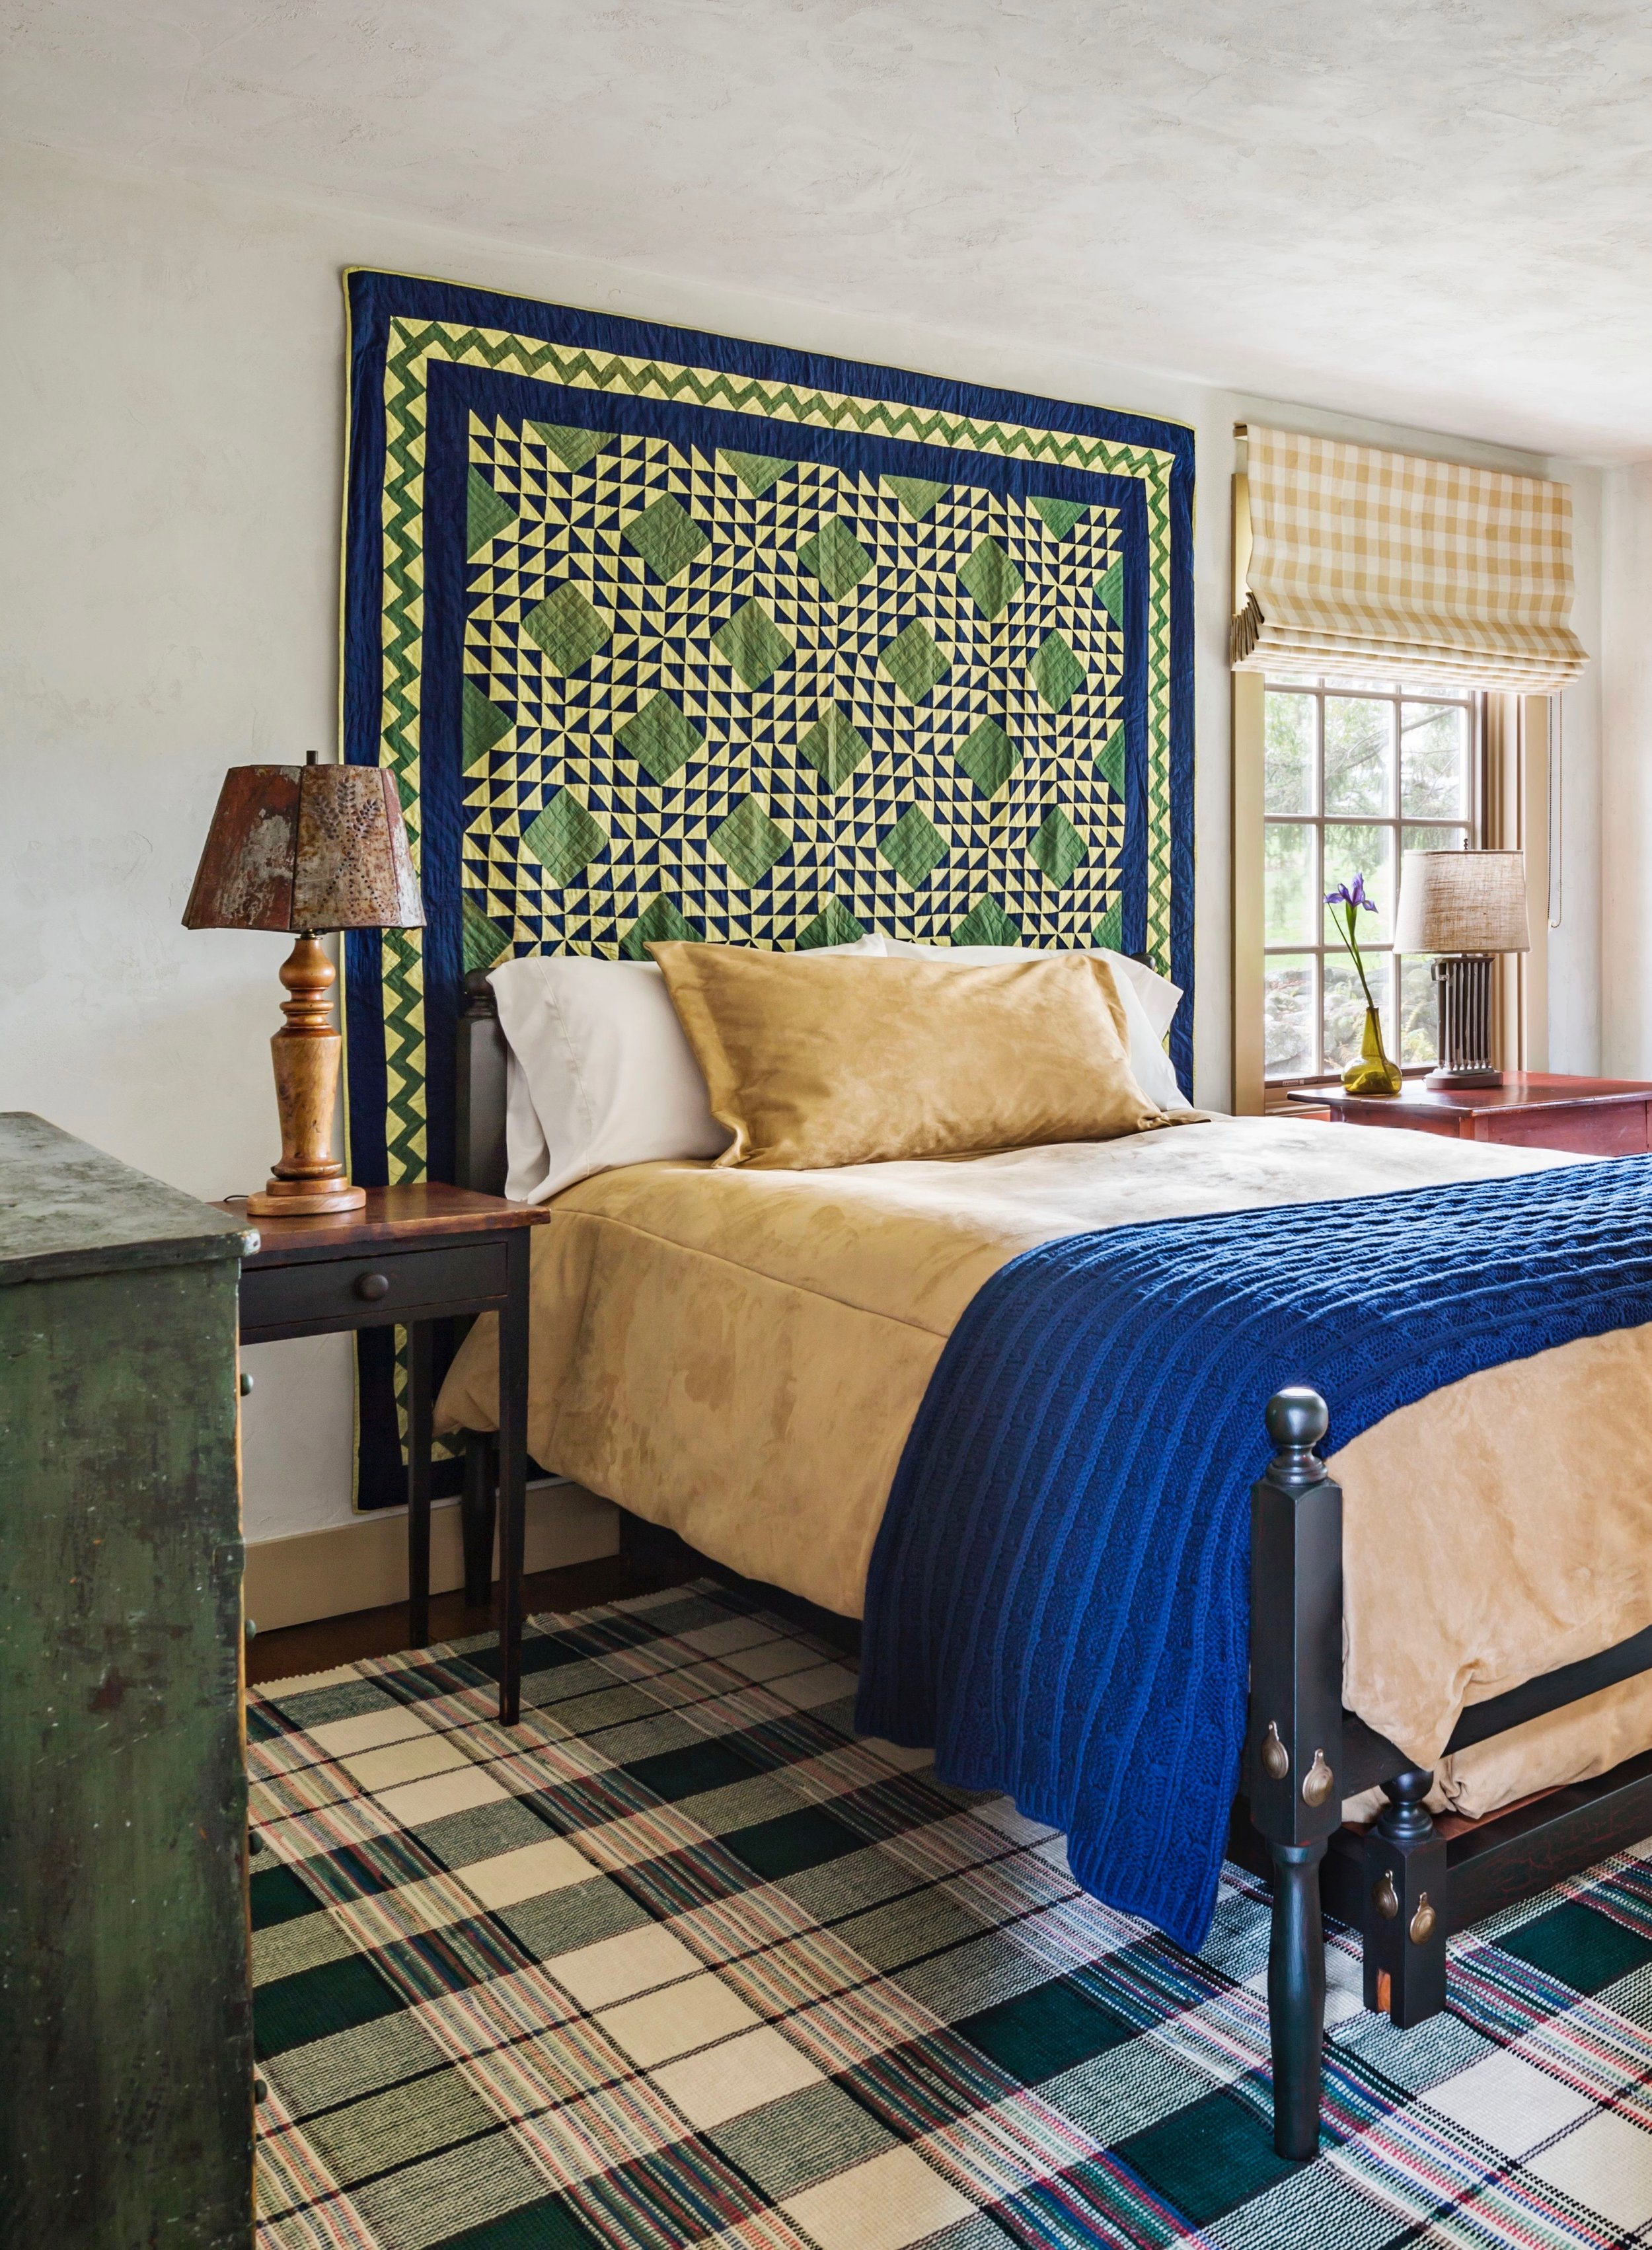 Guest House Bedroom cropped.jpeg